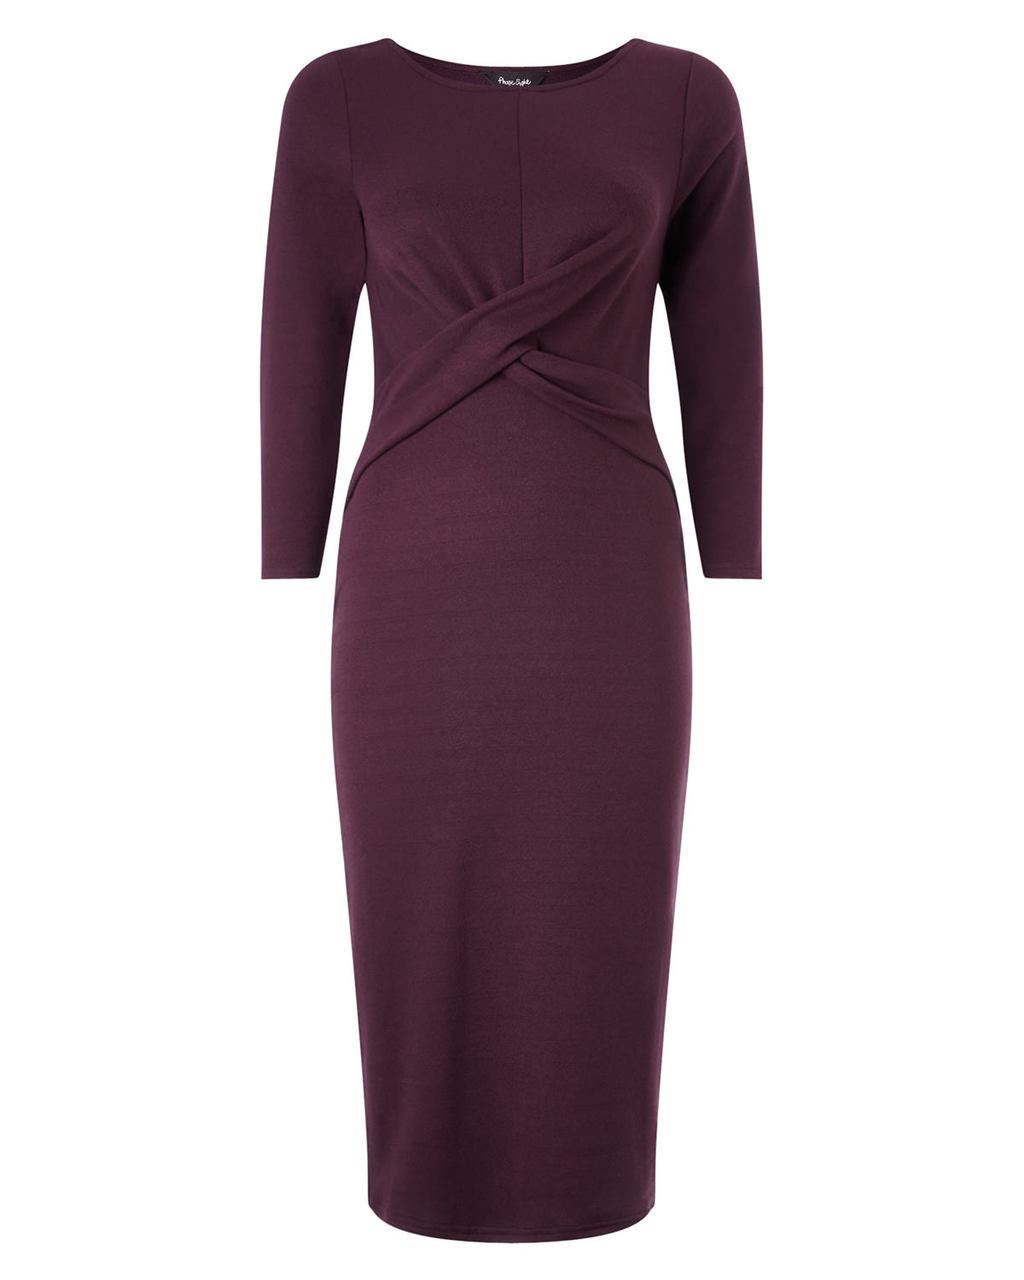 Mandy Midi Dress - style: shift; length: below the knee; neckline: round neck; pattern: plain; waist detail: twist front waist detail/nipped in at waist on one side/soft pleats/draping/ruching/gathering waist detail; predominant colour: purple; occasions: evening, occasion; fit: body skimming; fibres: polyester/polyamide - stretch; sleeve length: 3/4 length; sleeve style: standard; pattern type: fabric; texture group: jersey - stretchy/drapey; season: a/w 2015